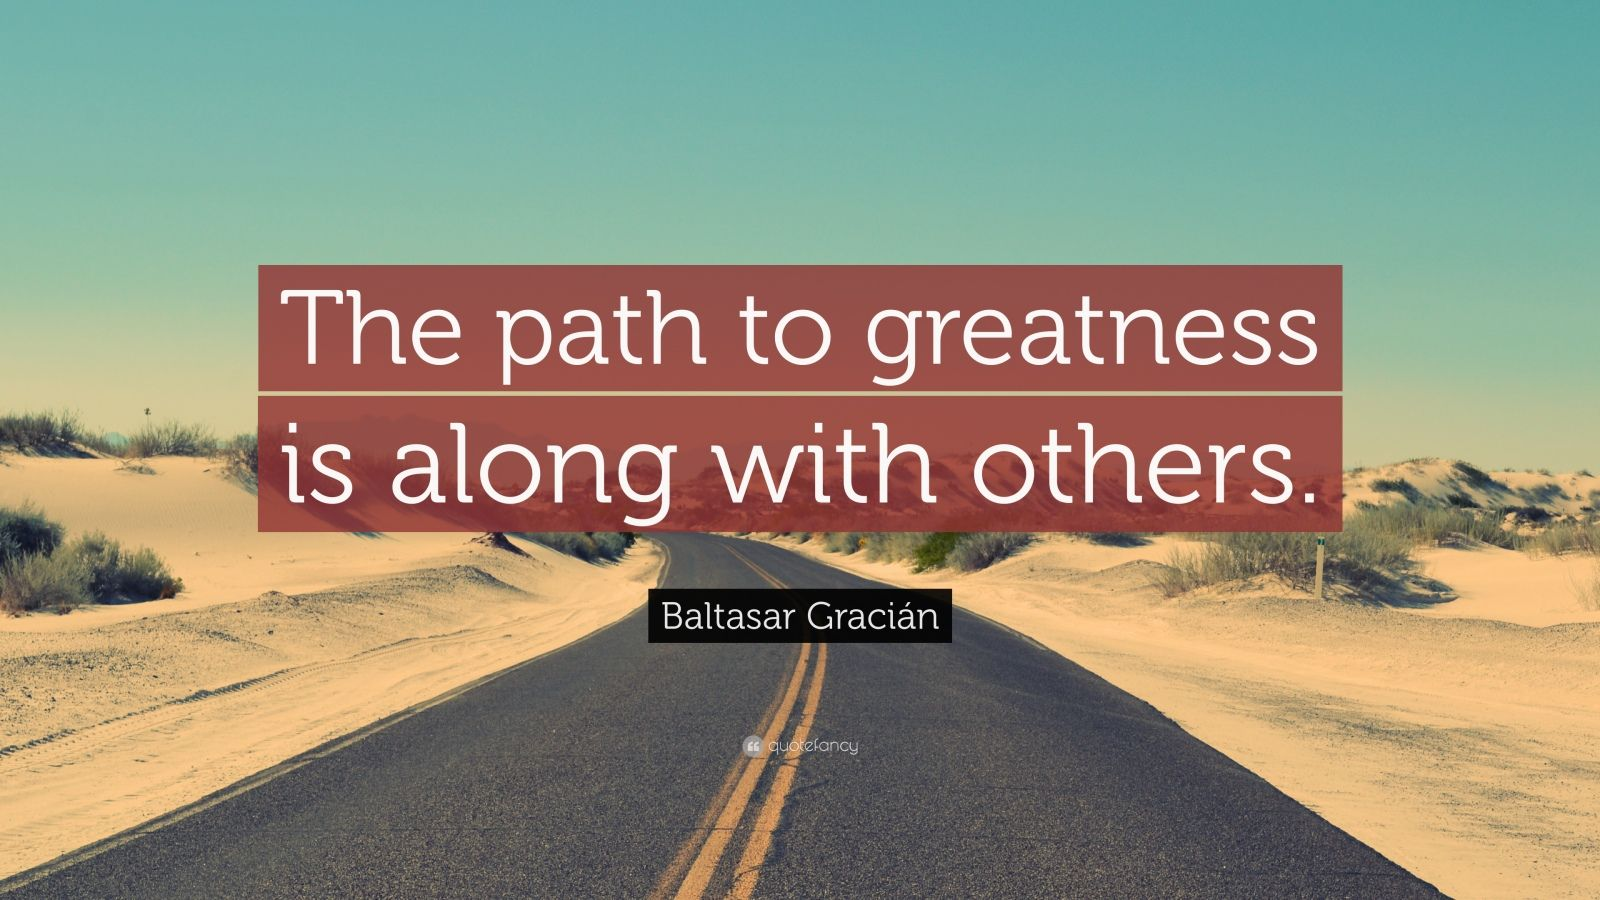 """Baltasar Gracián Quote: """"The path to greatness is along with others."""""""